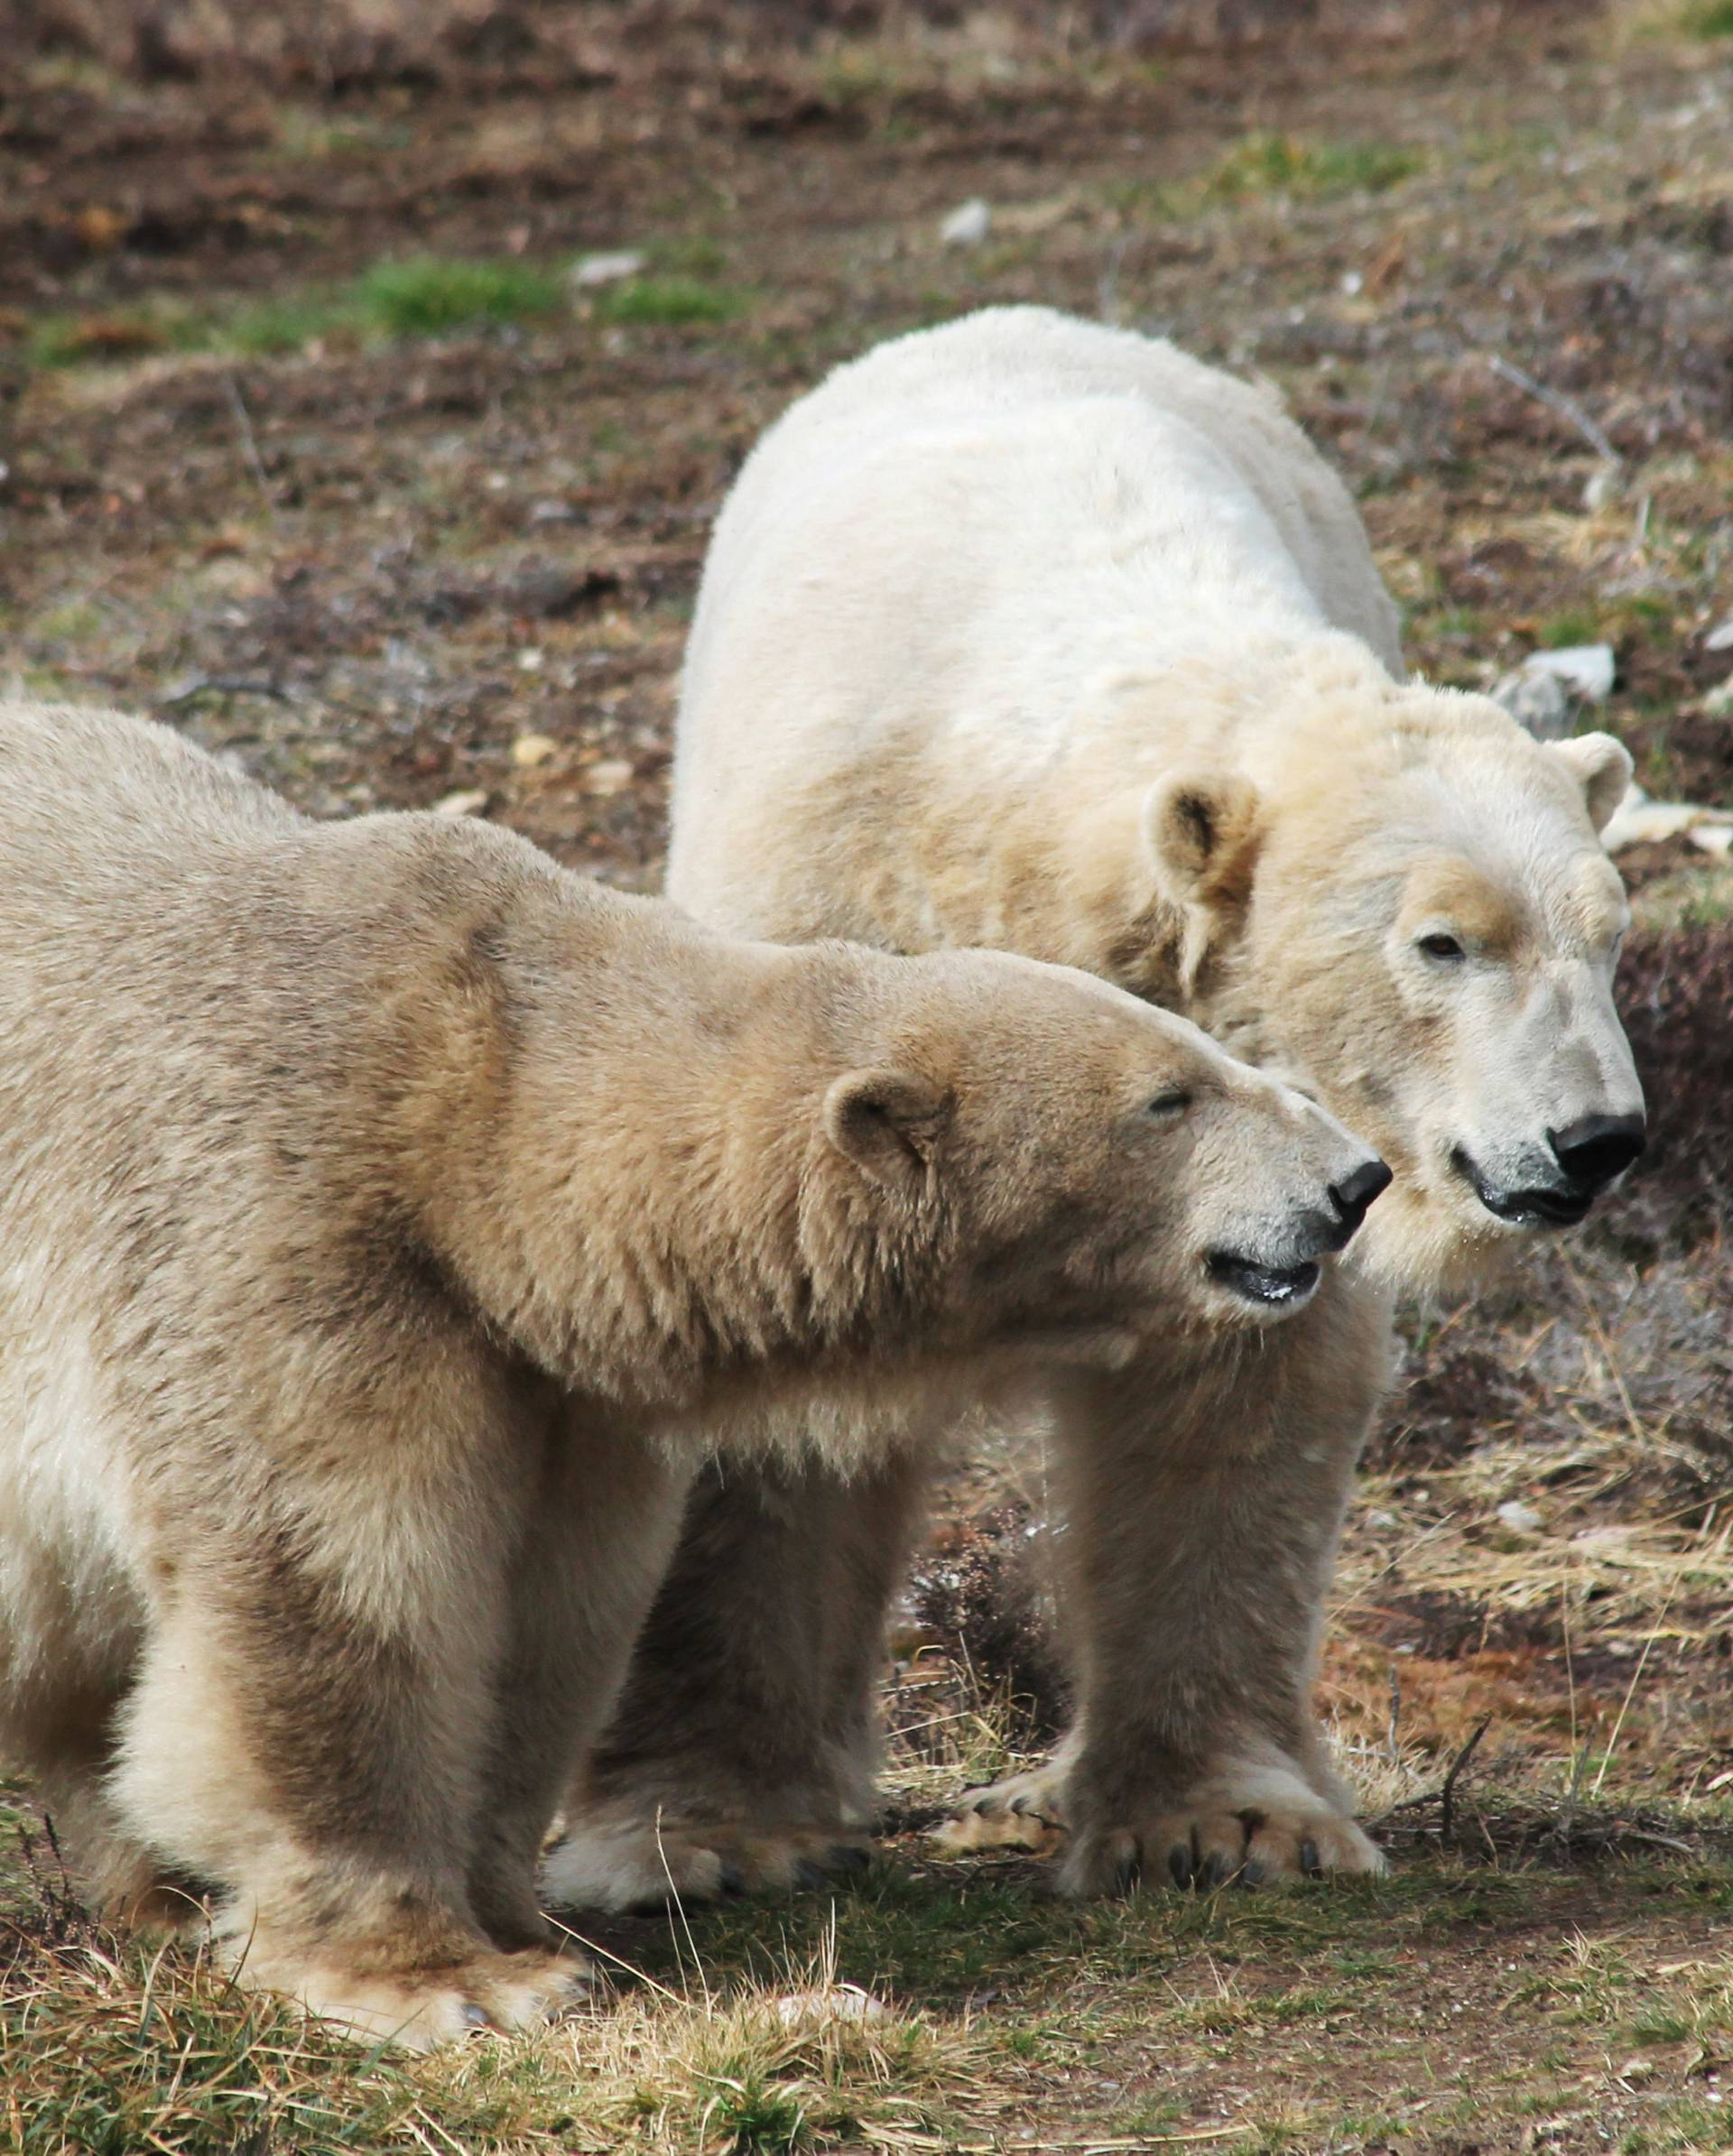 Polar bears Victoria and Arktos interact in Highland Wildlife Park in Kincraig